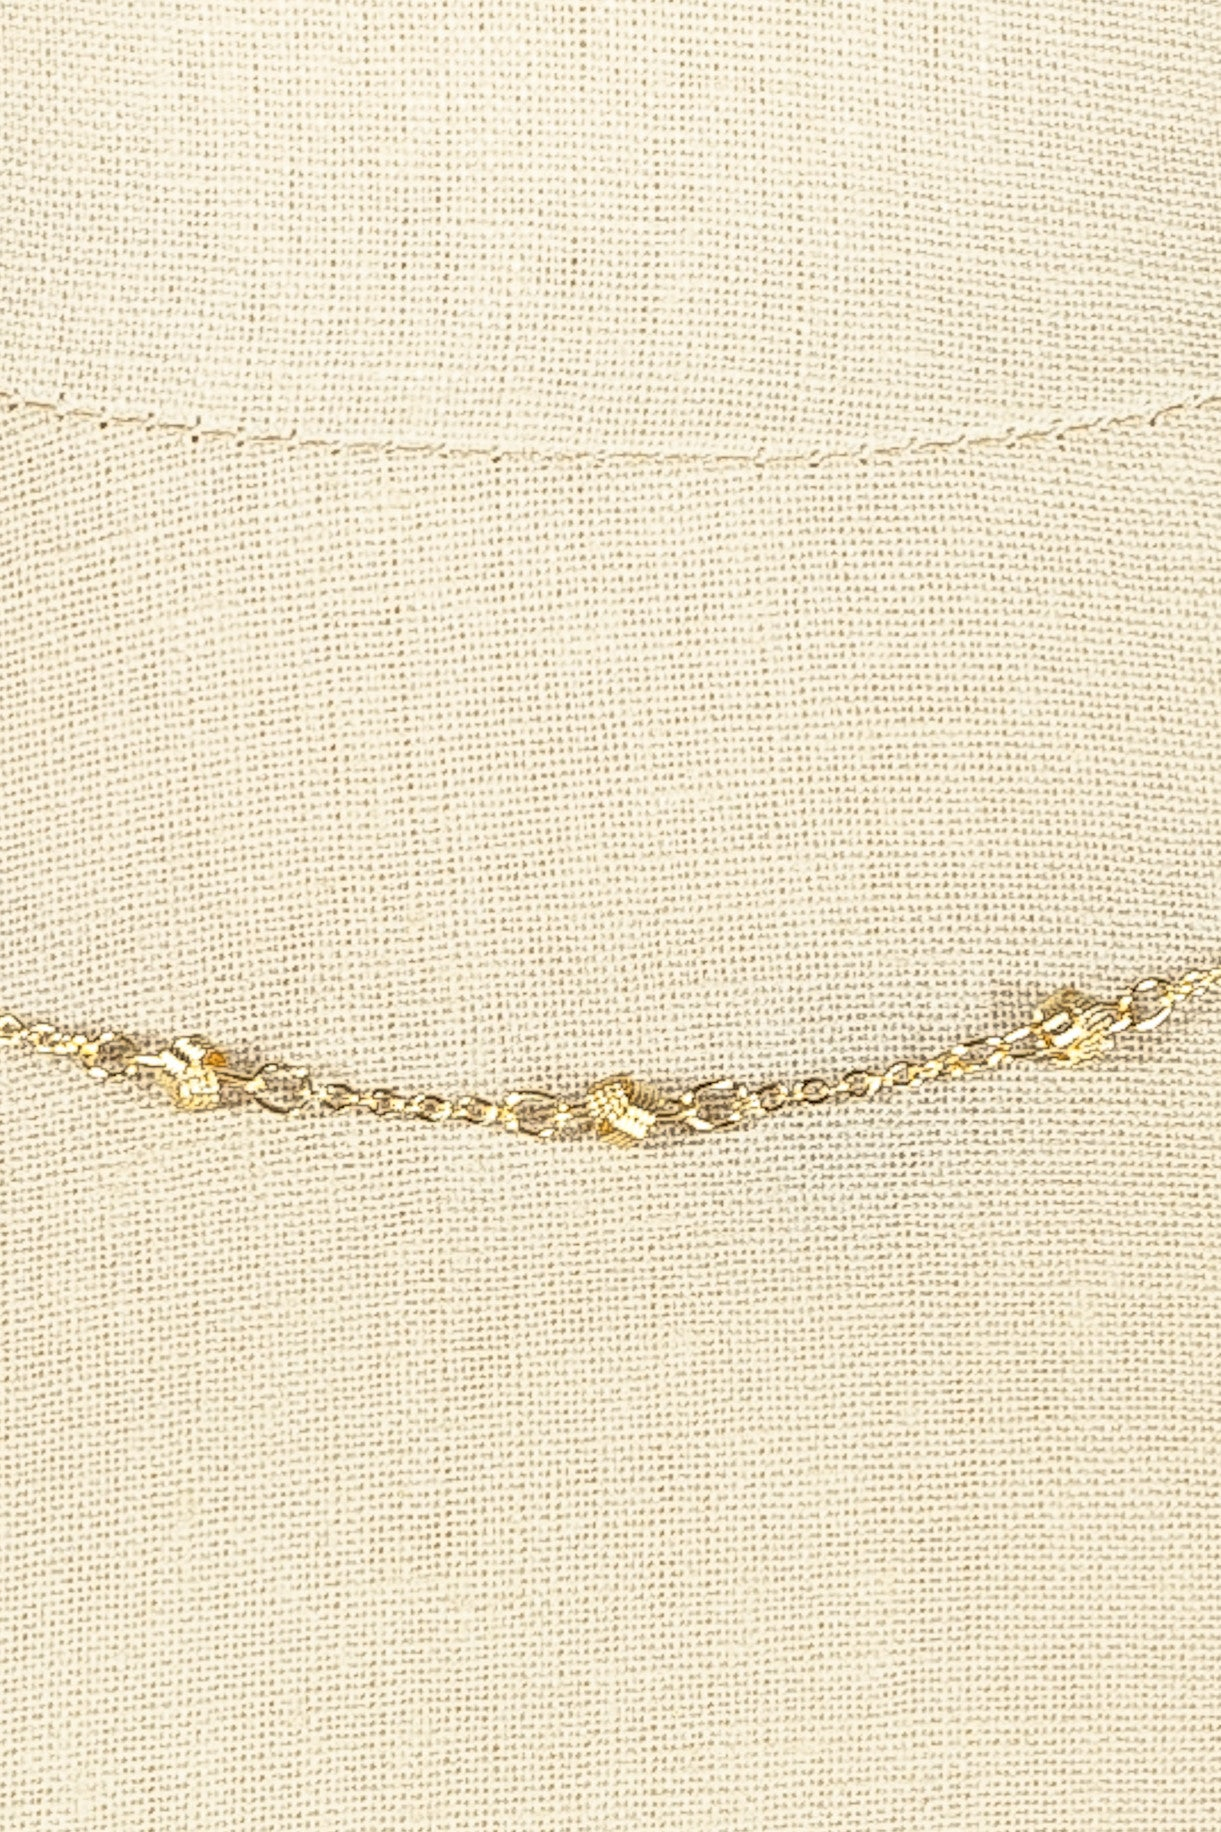 80's__Trifari__Dainty Gold Knot Necklace